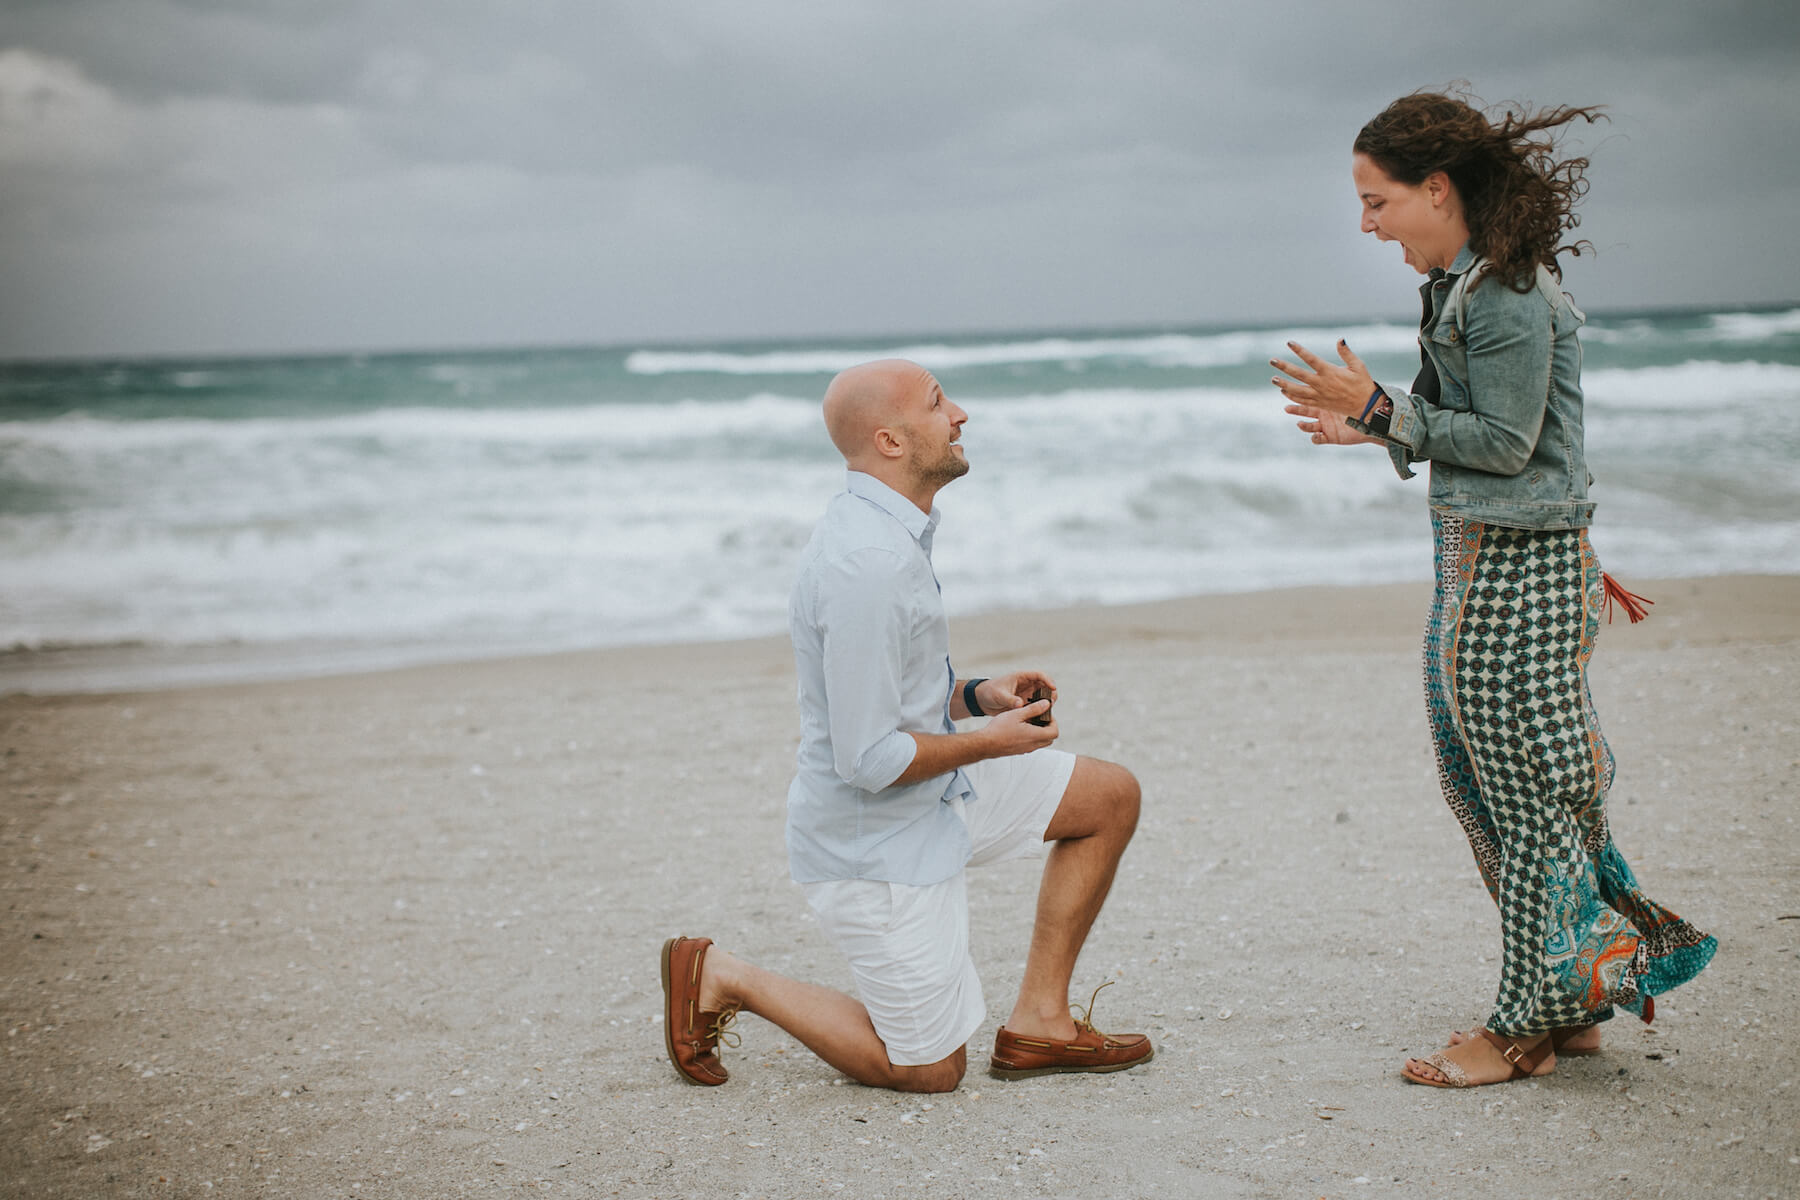 Woman surprised at surprise Flytographer proposal while her partner presents her engagement ring in Miami, Florida USA